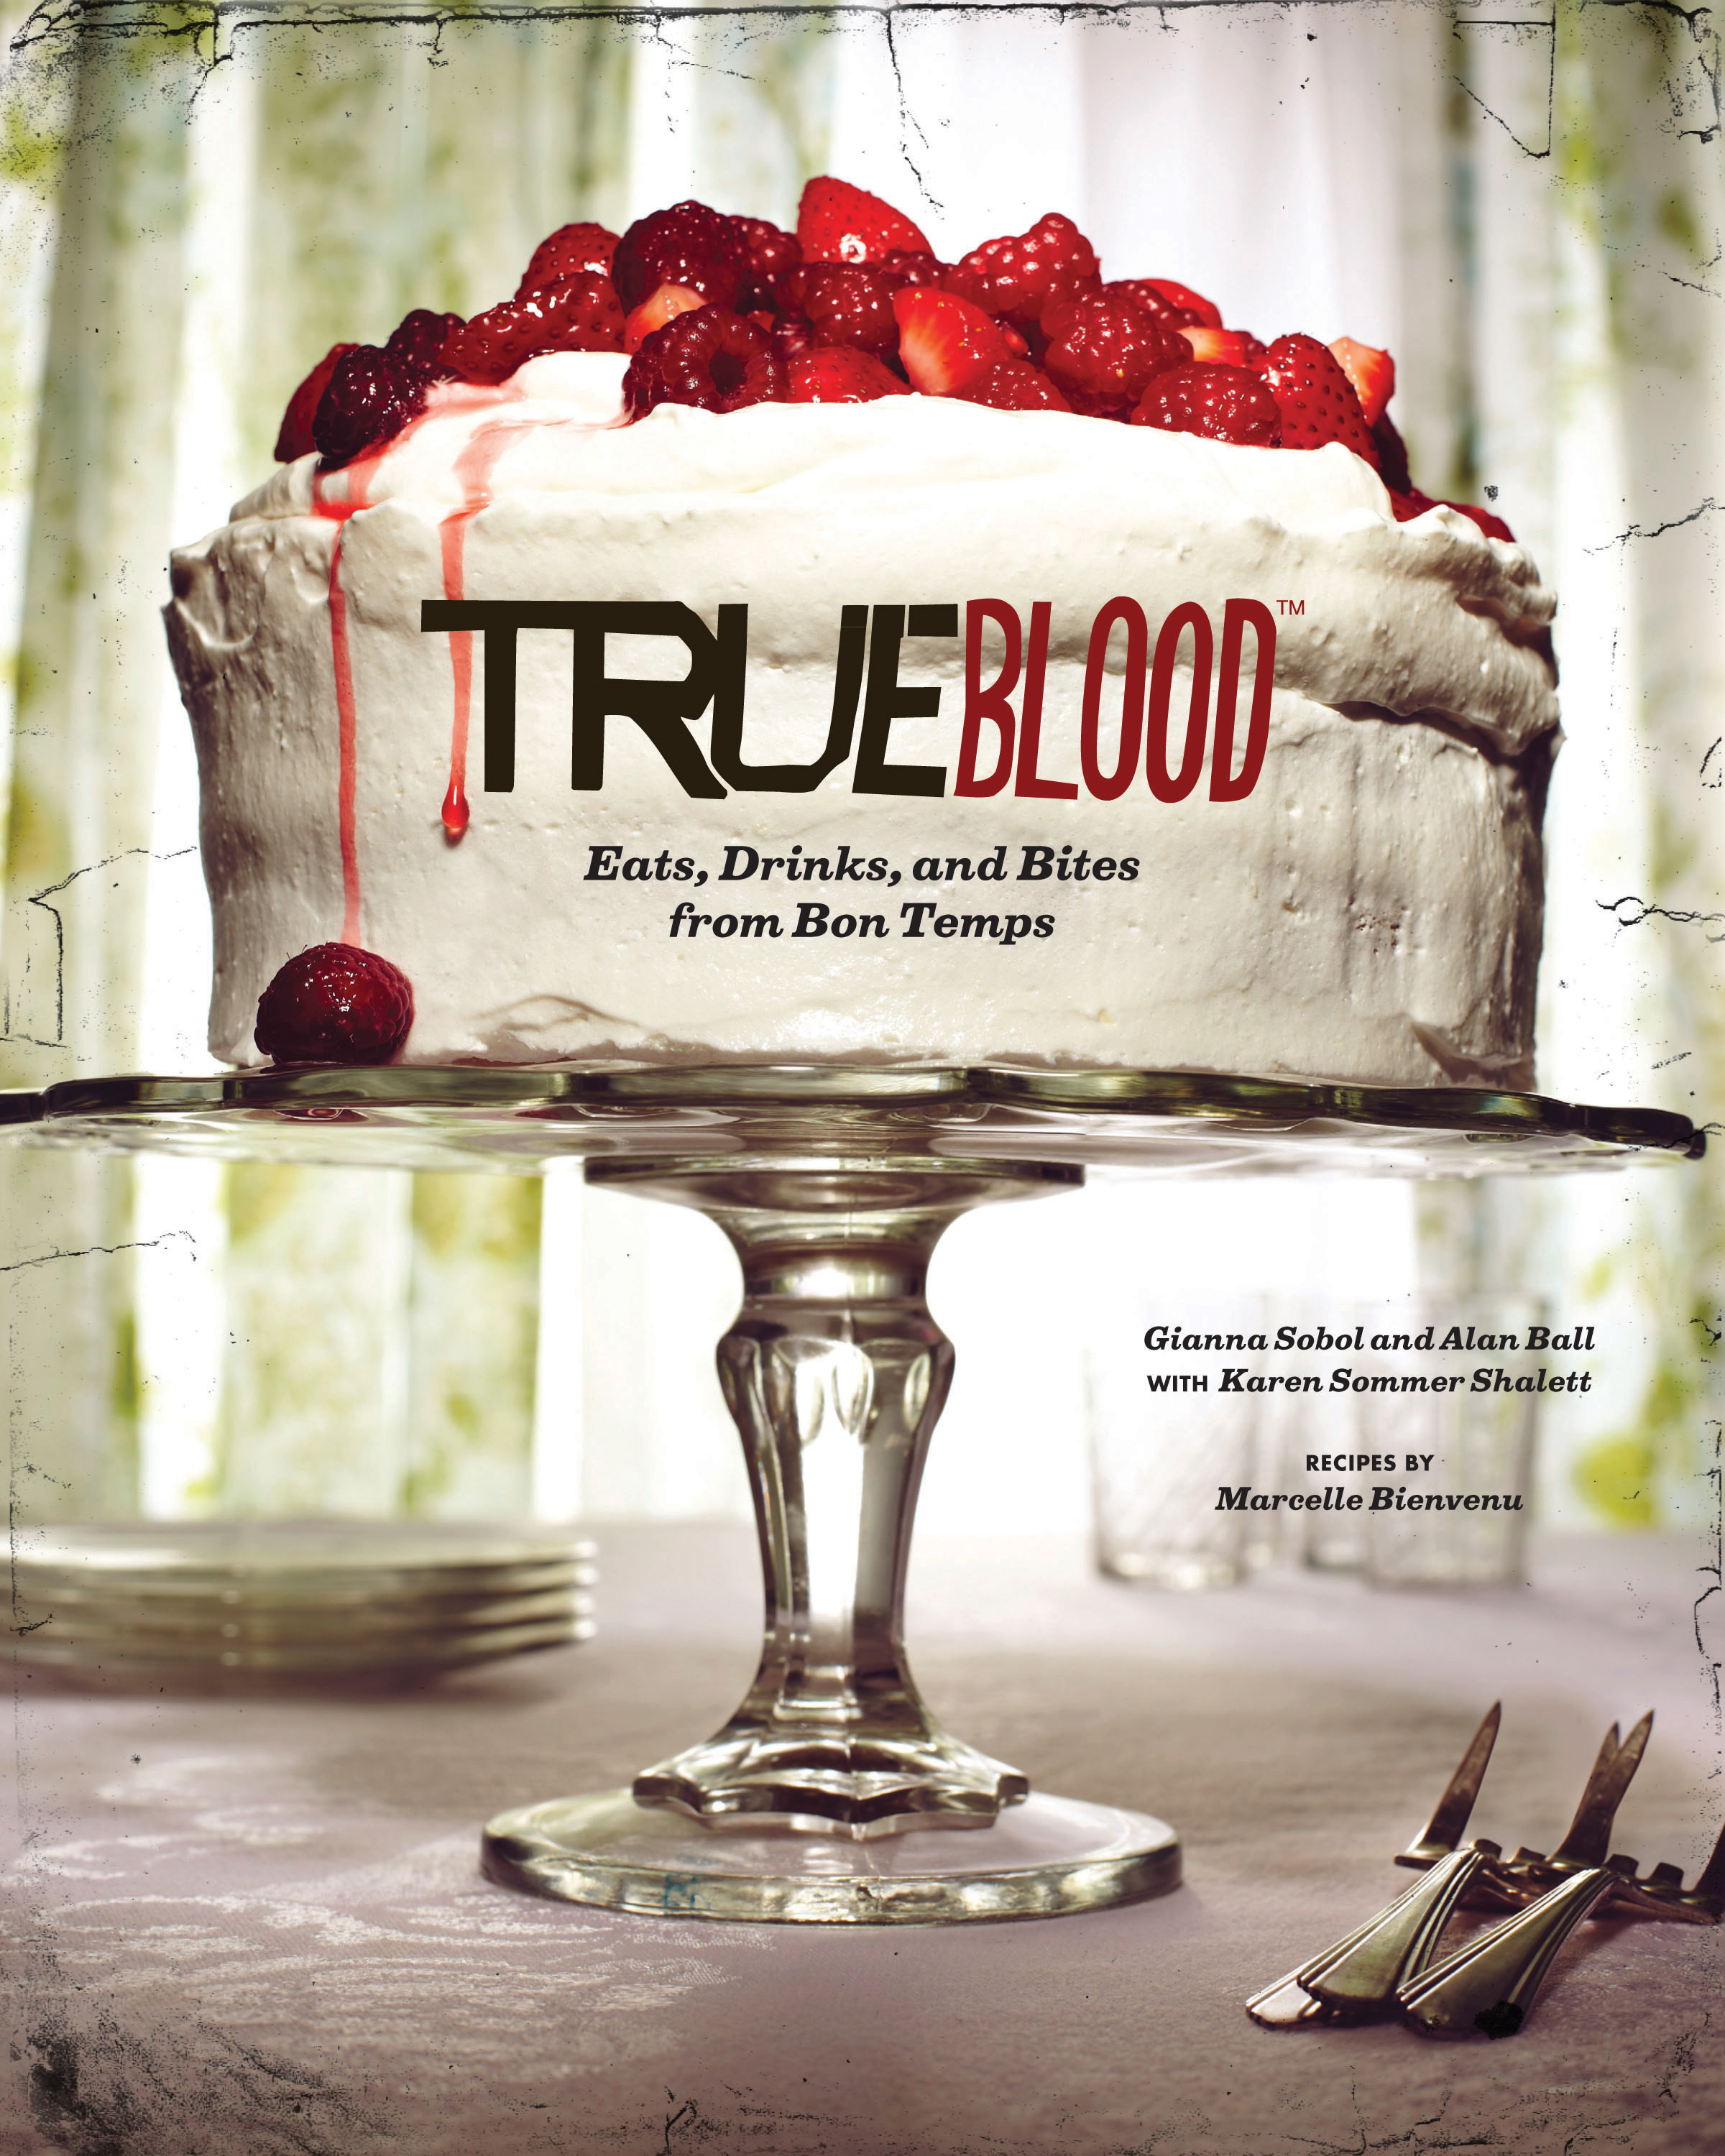 True Blood: Eats, Drinks, and Bites from Bon Temps By: Alan Ball,Gianna Sobol